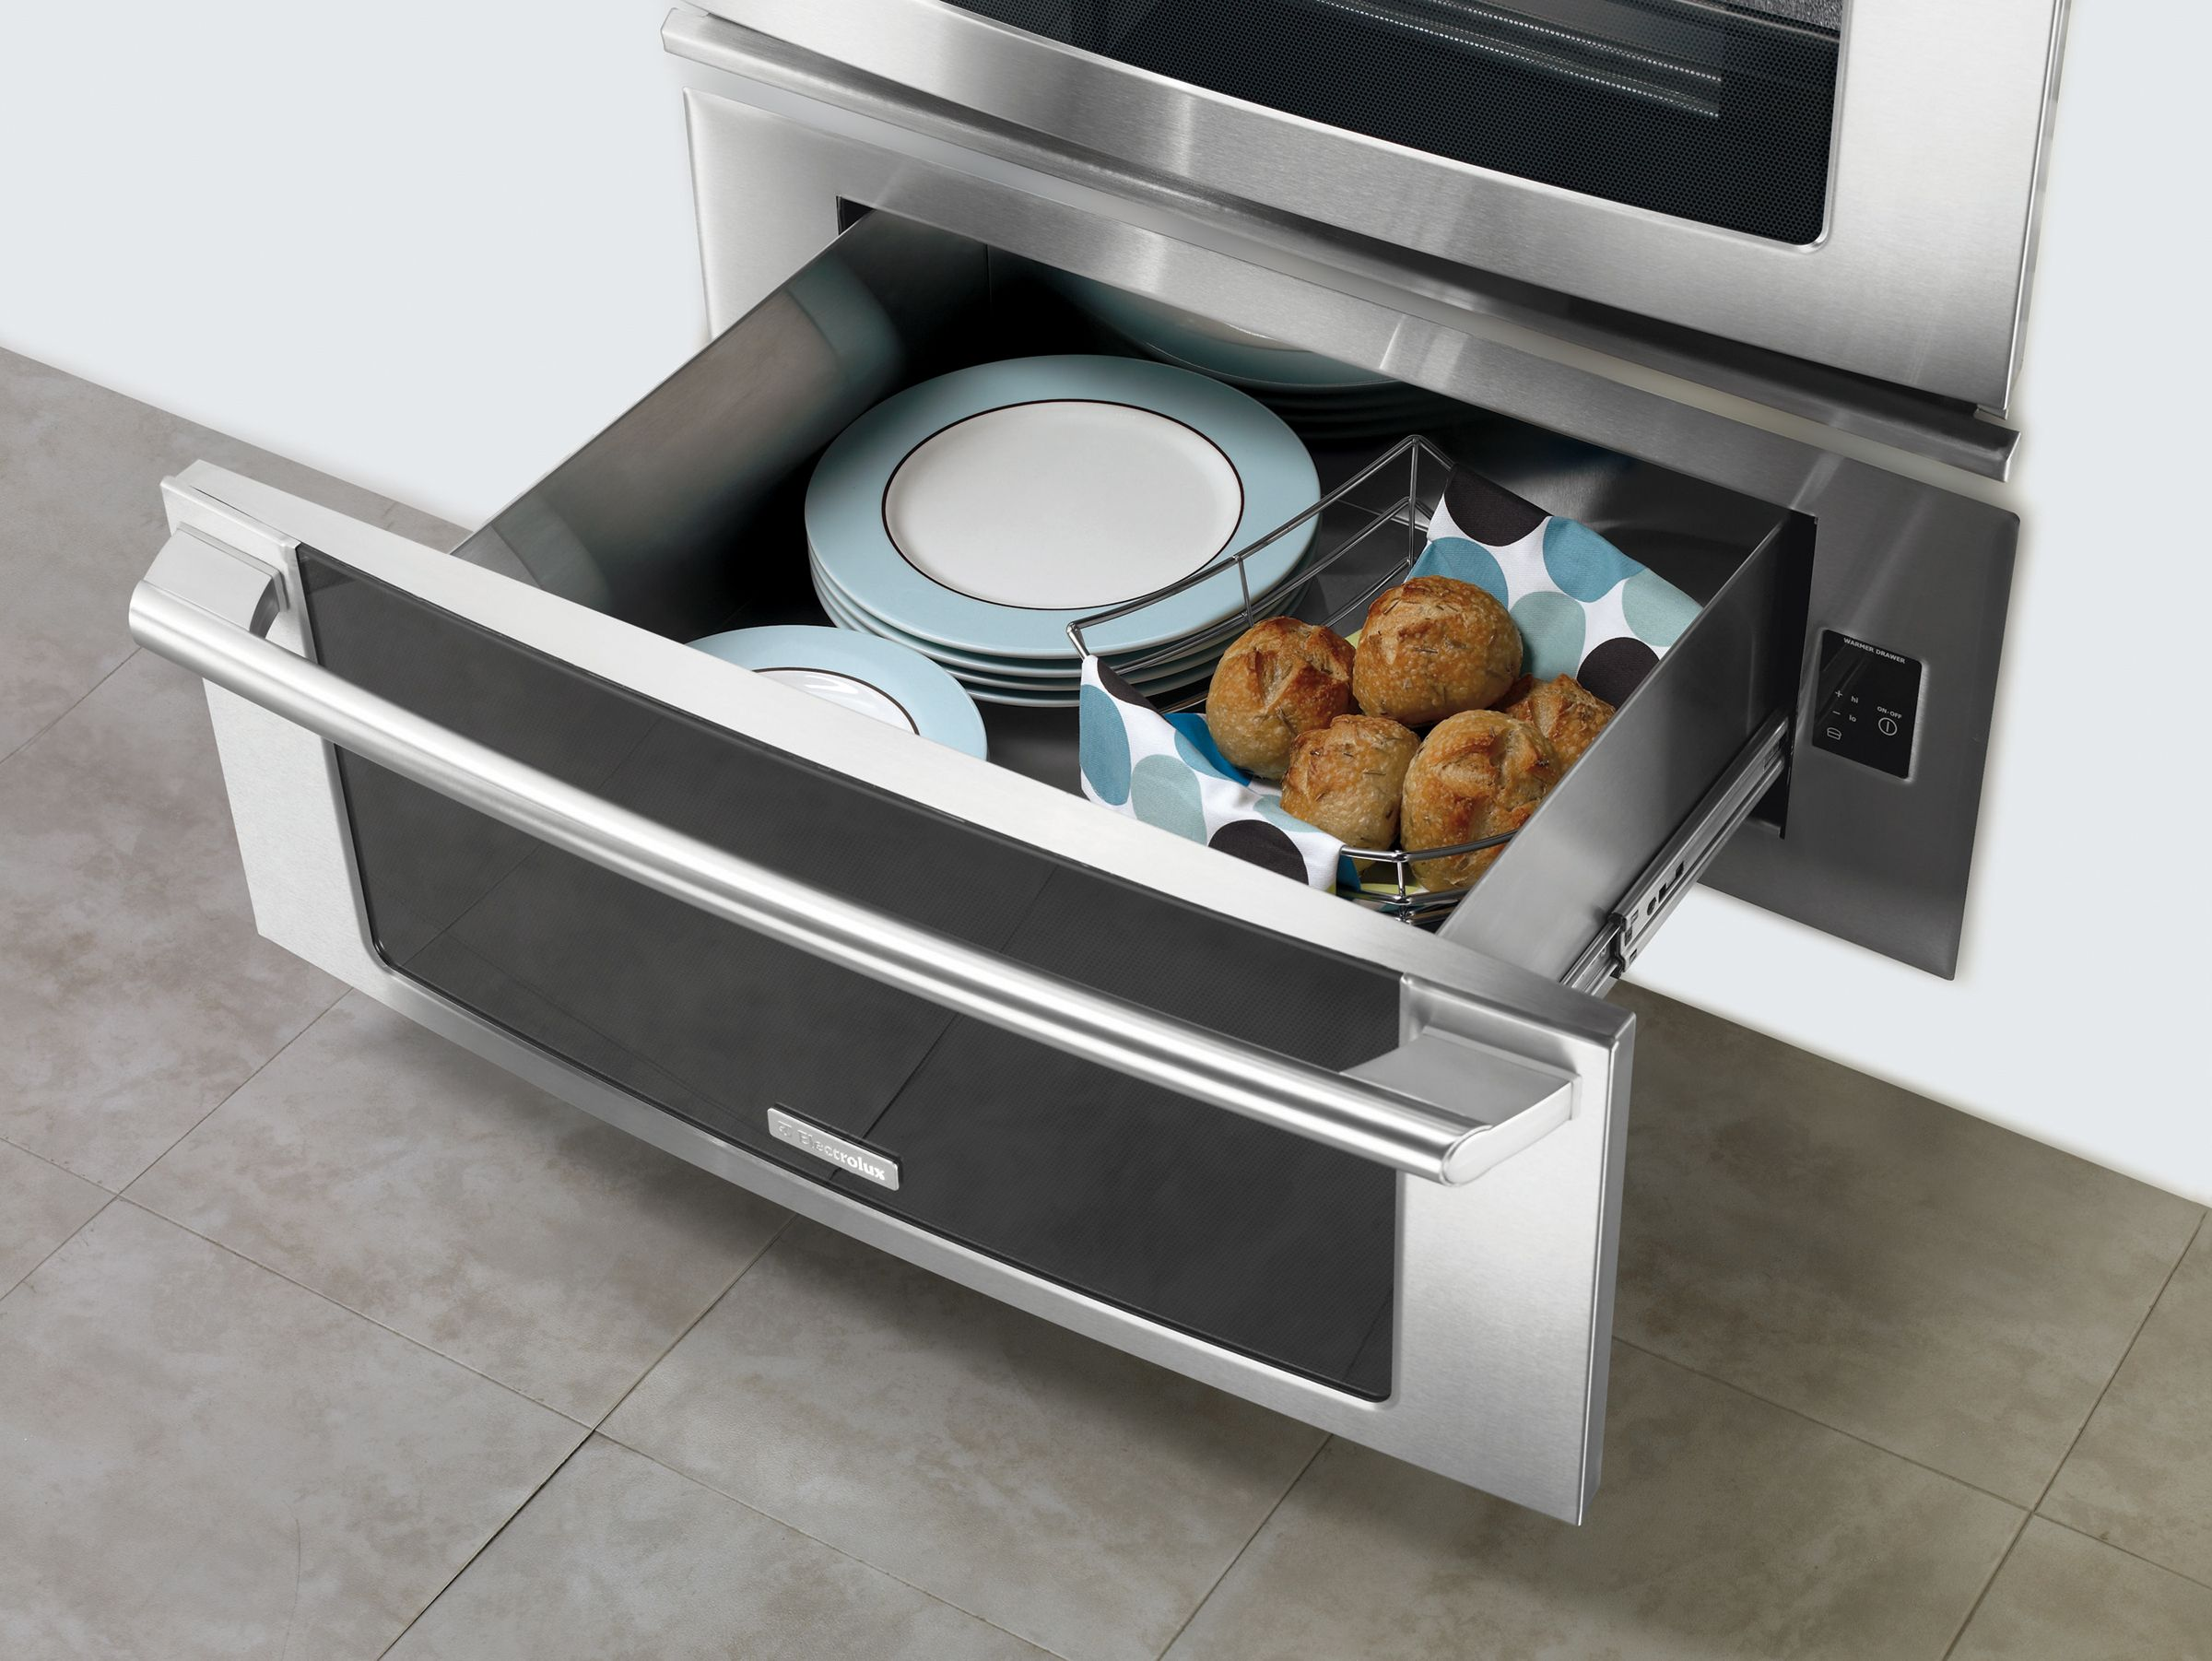 "Electrolux 30"" Warming Drawer EW30WD55G"